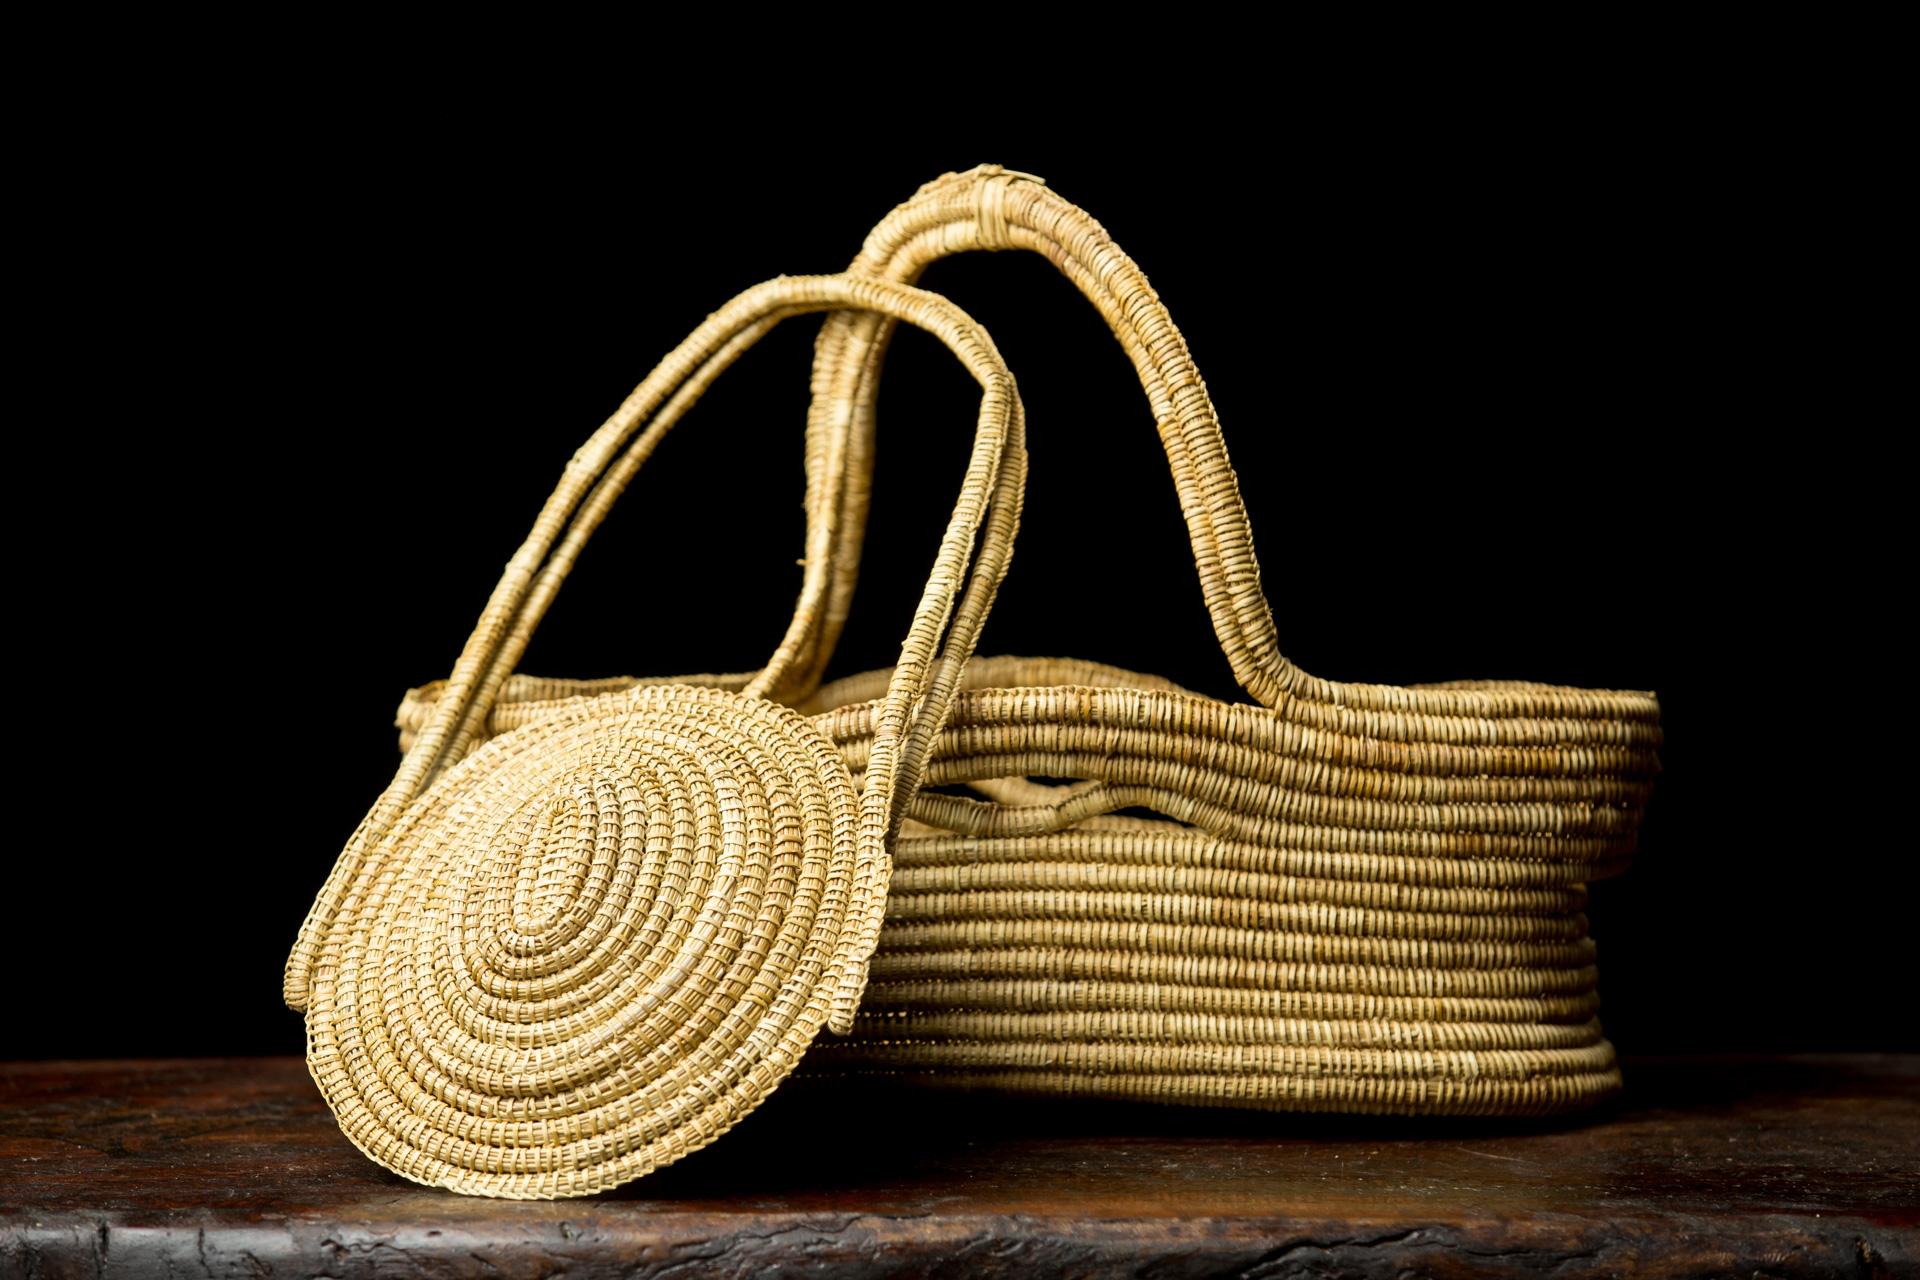 Ngarrindjeri sister basket and carry basket